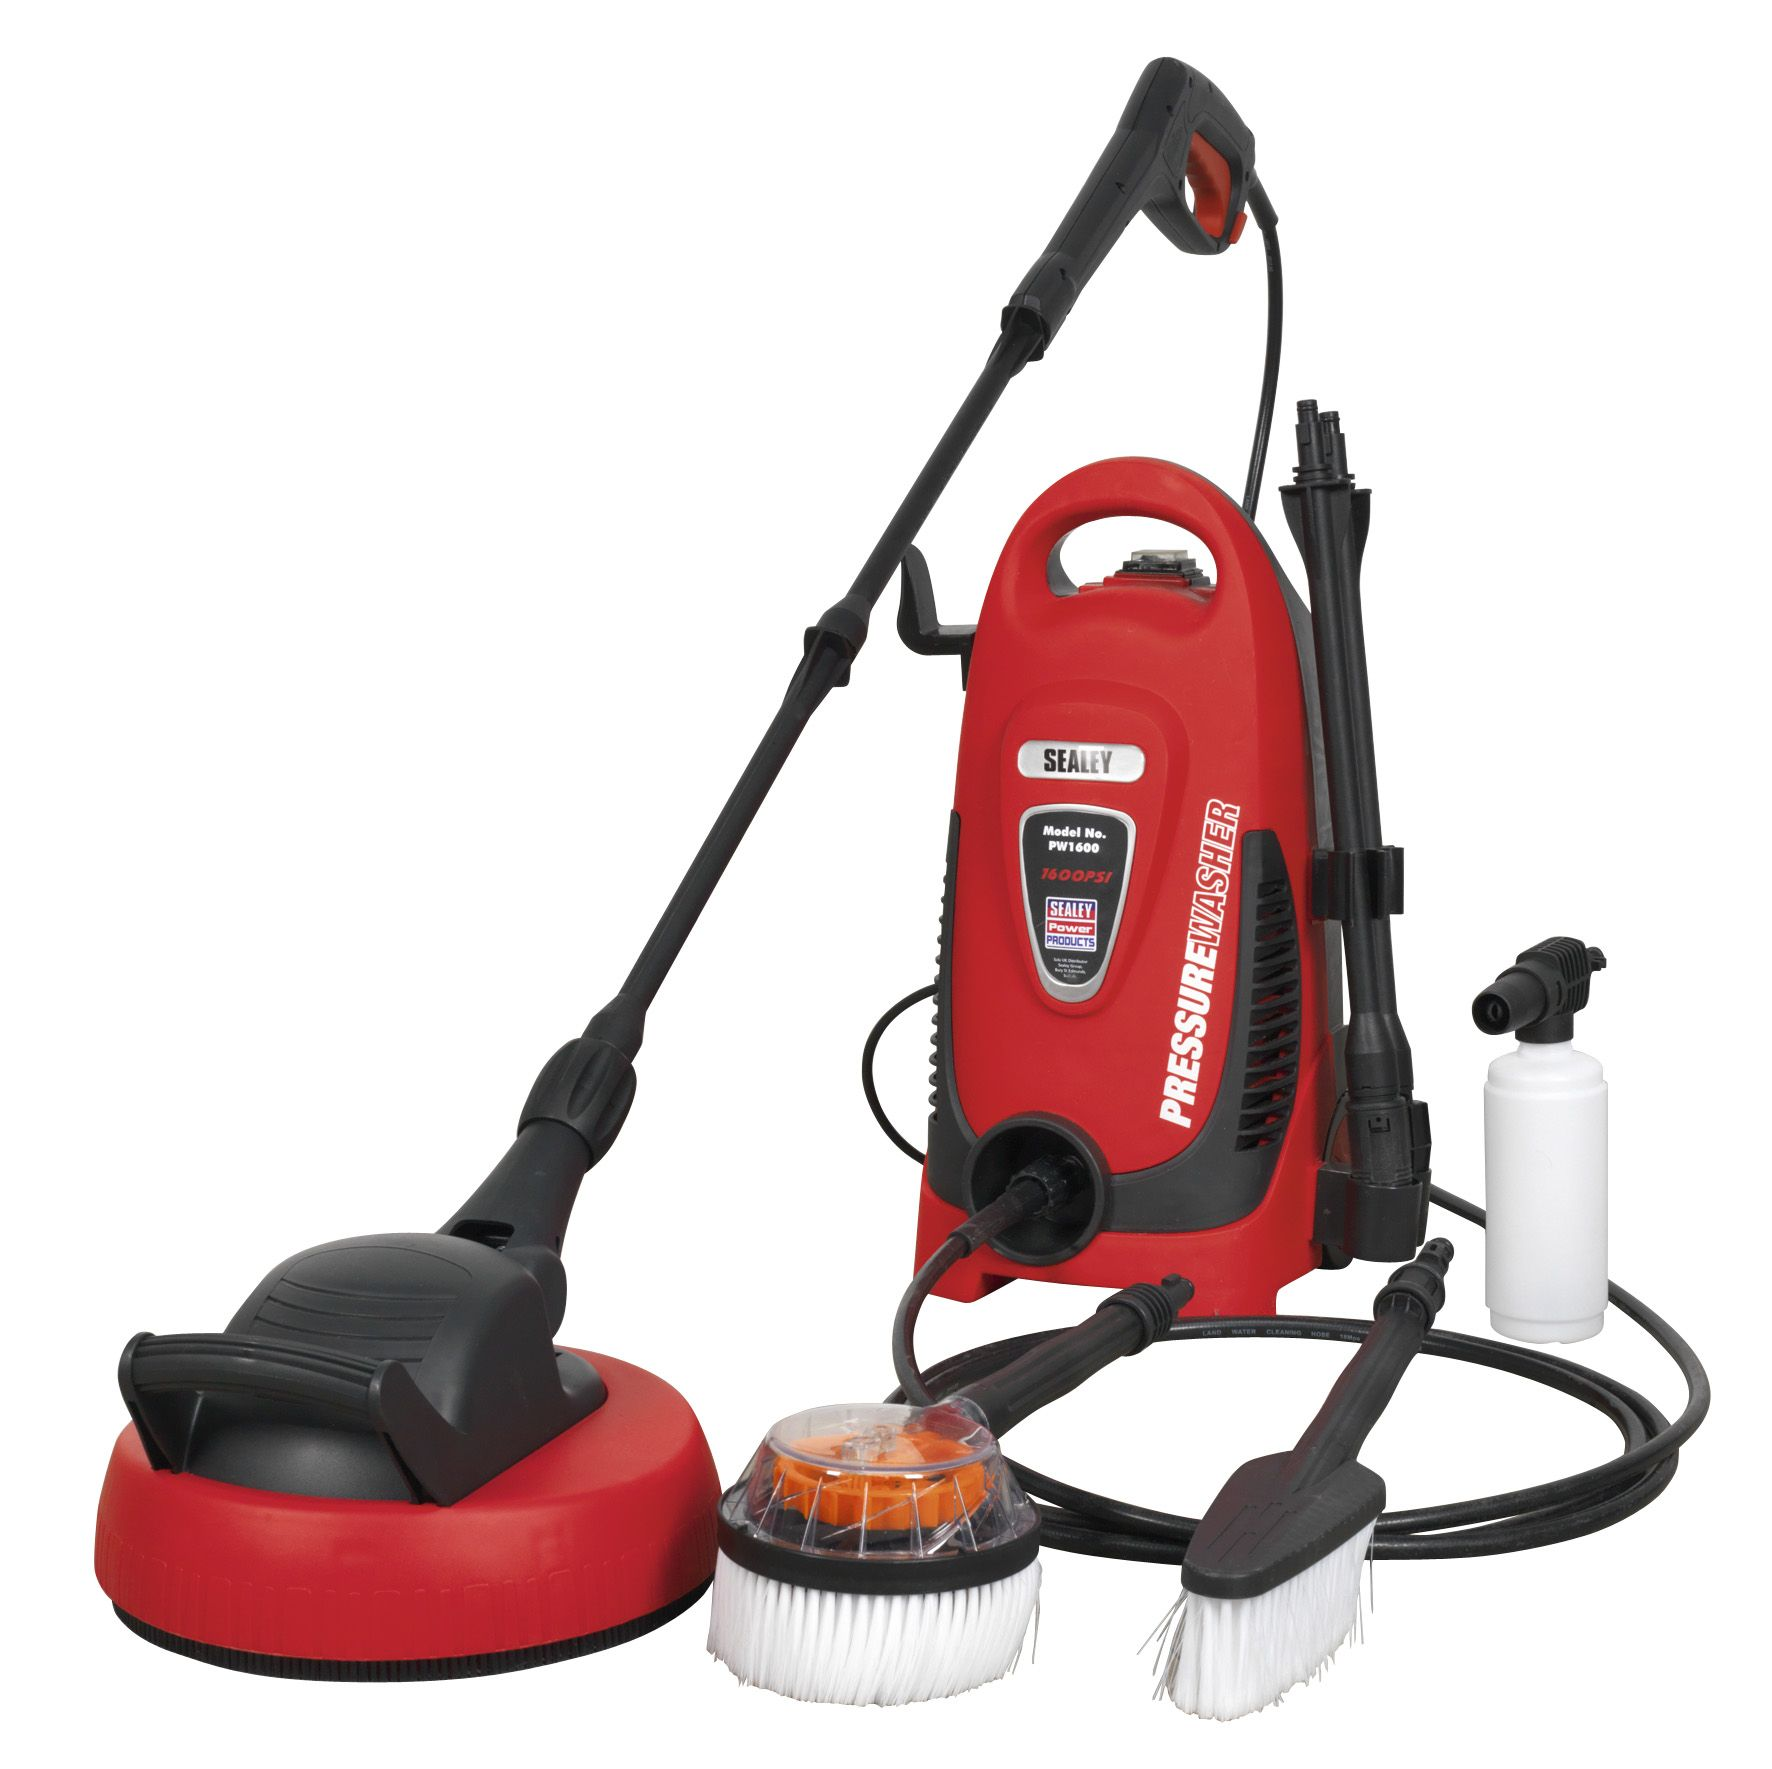 Sealey Pressure Washer 110bar with TSS & Rotablast Nozzle 230V with Accessory Ki